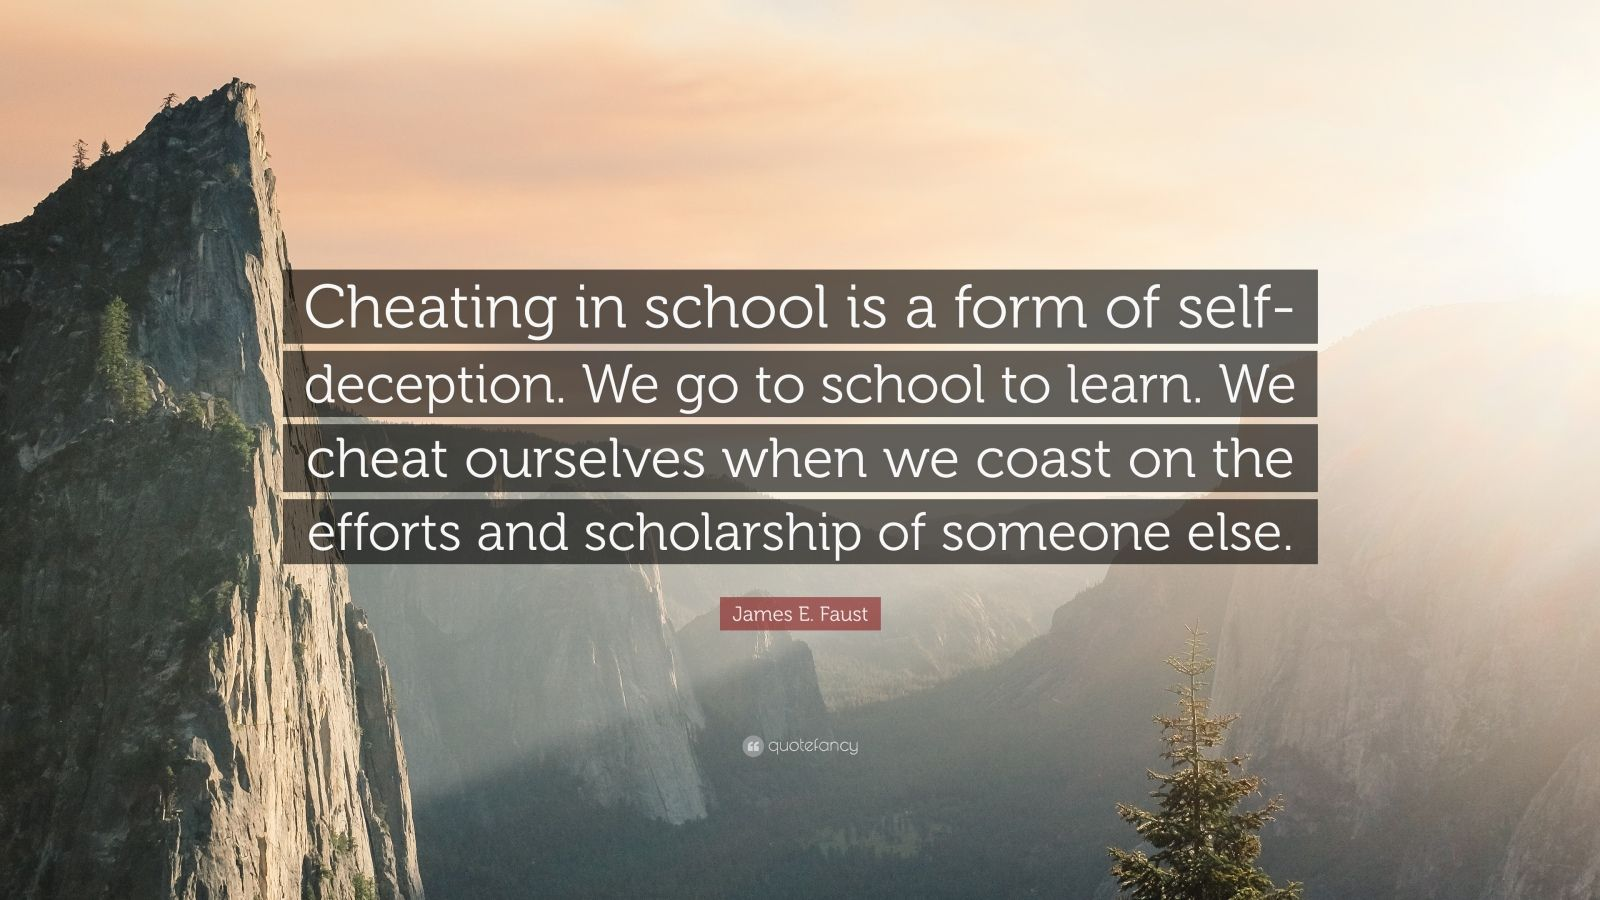 """James E. Faust Quote: """"Cheating in school is a form of self-deception. We go to school to learn. We cheat ourselves when we coast on the efforts and scholarship of someone else."""""""